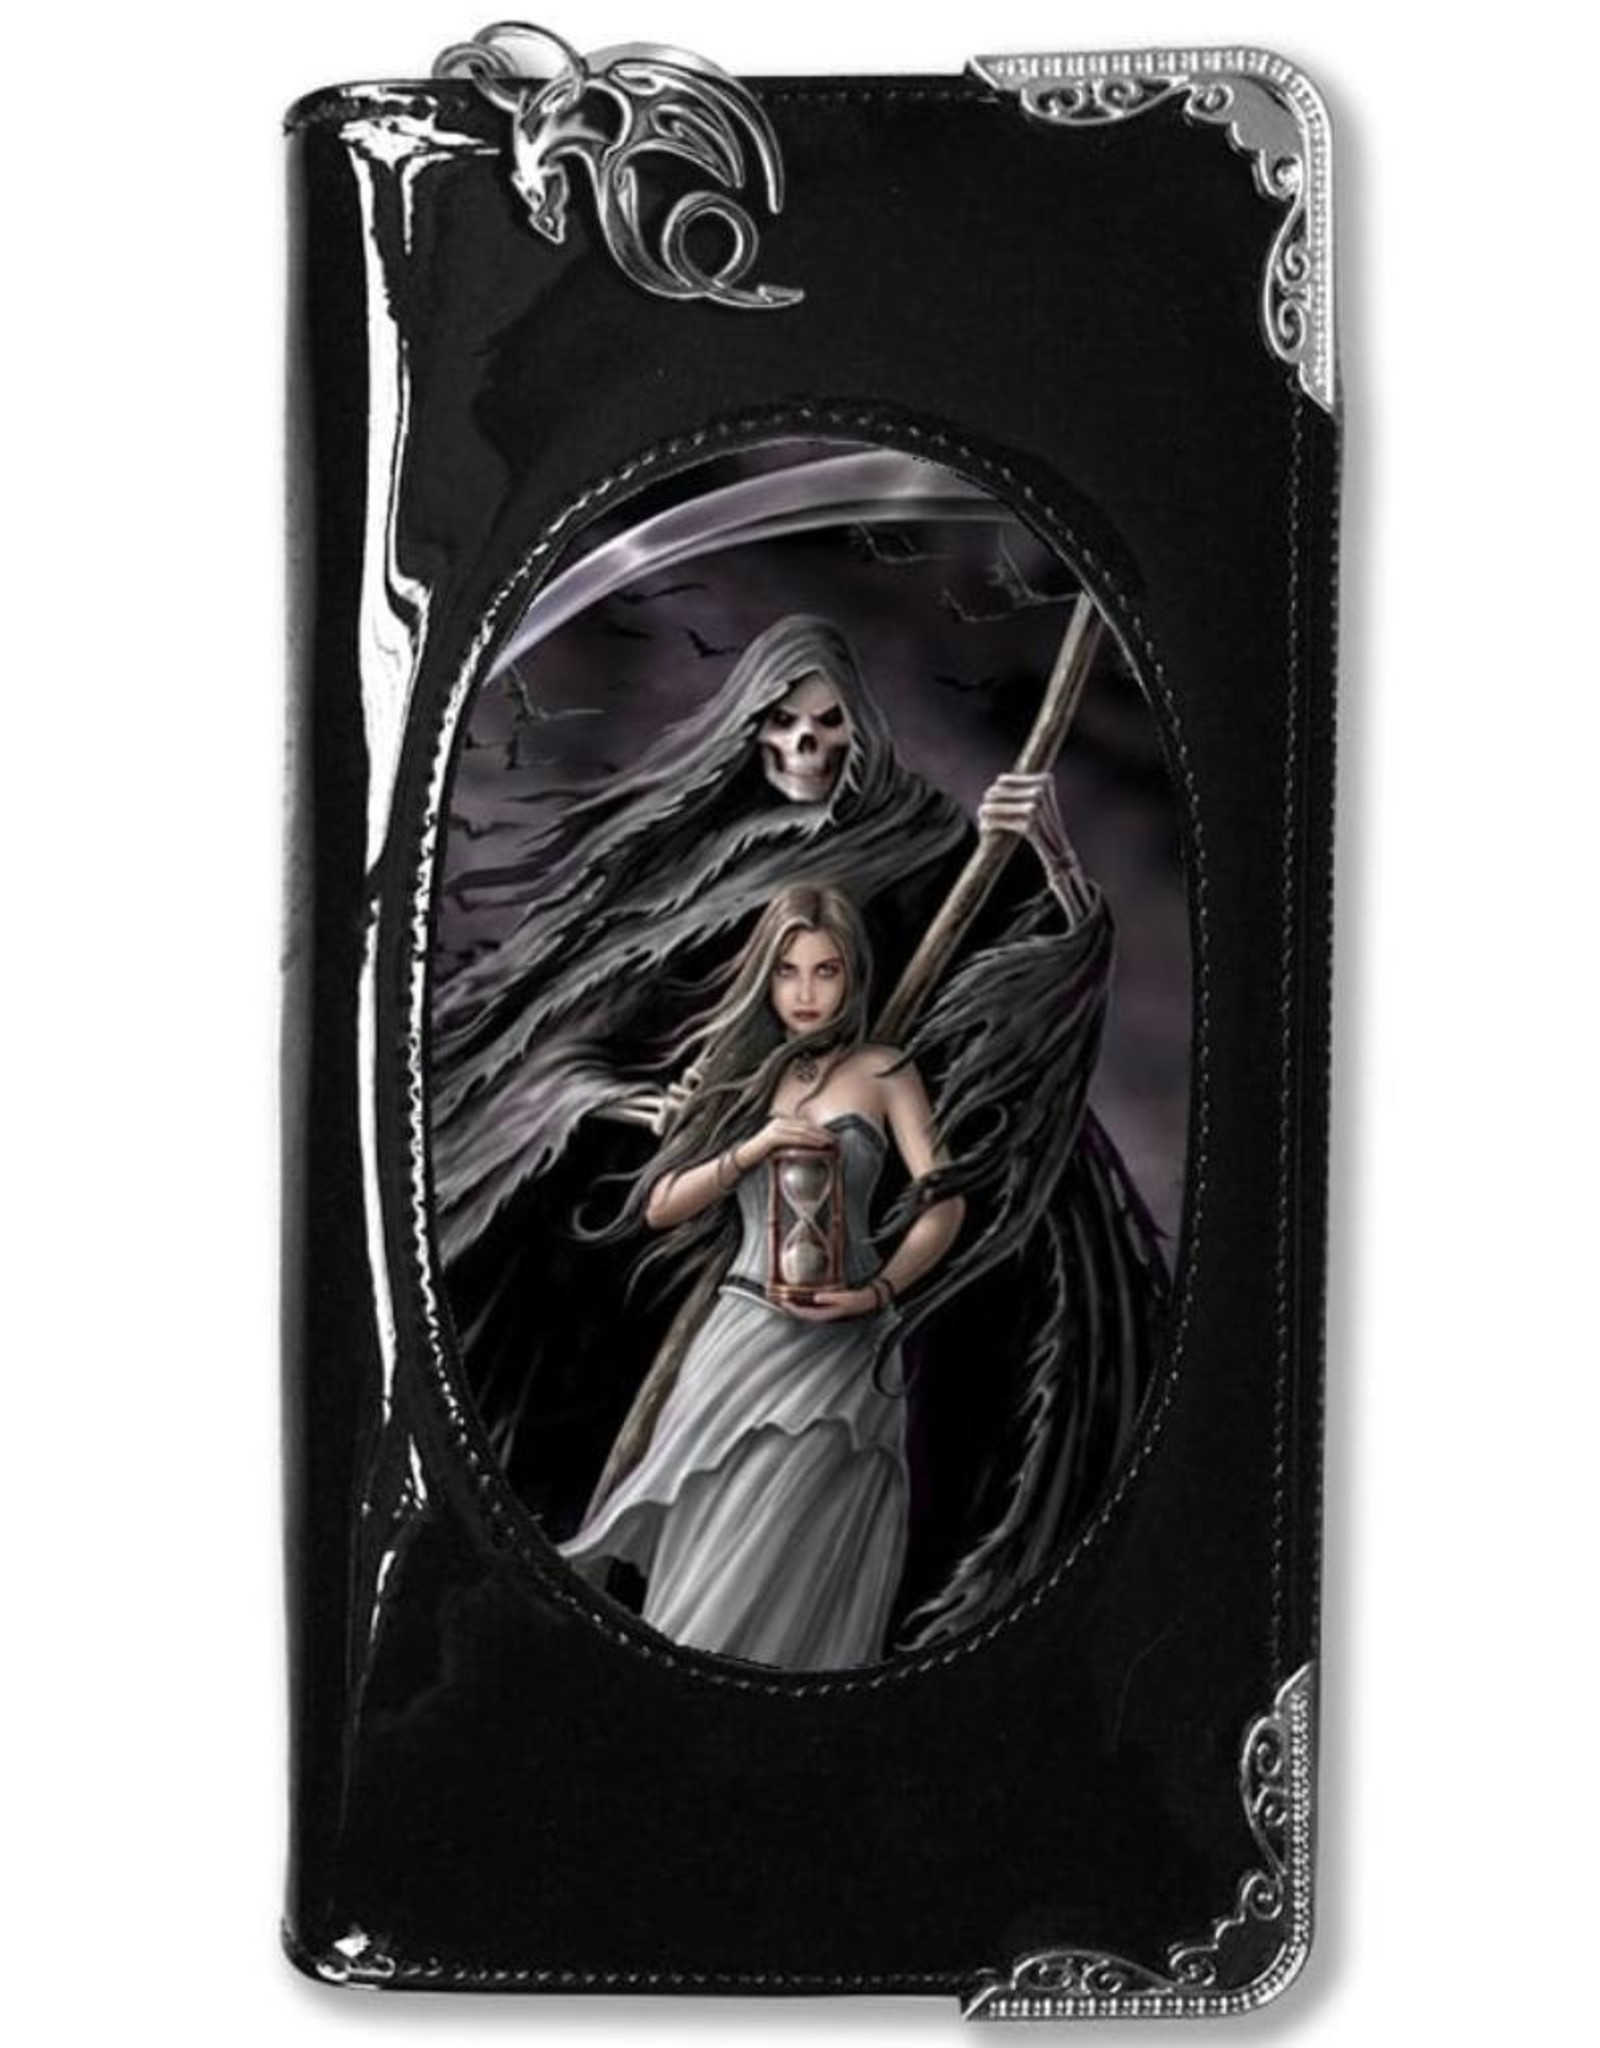 Anne Stokes Gothic wallets and purses - Anne Stokes 3D lenticukar purse Summon The Reaper